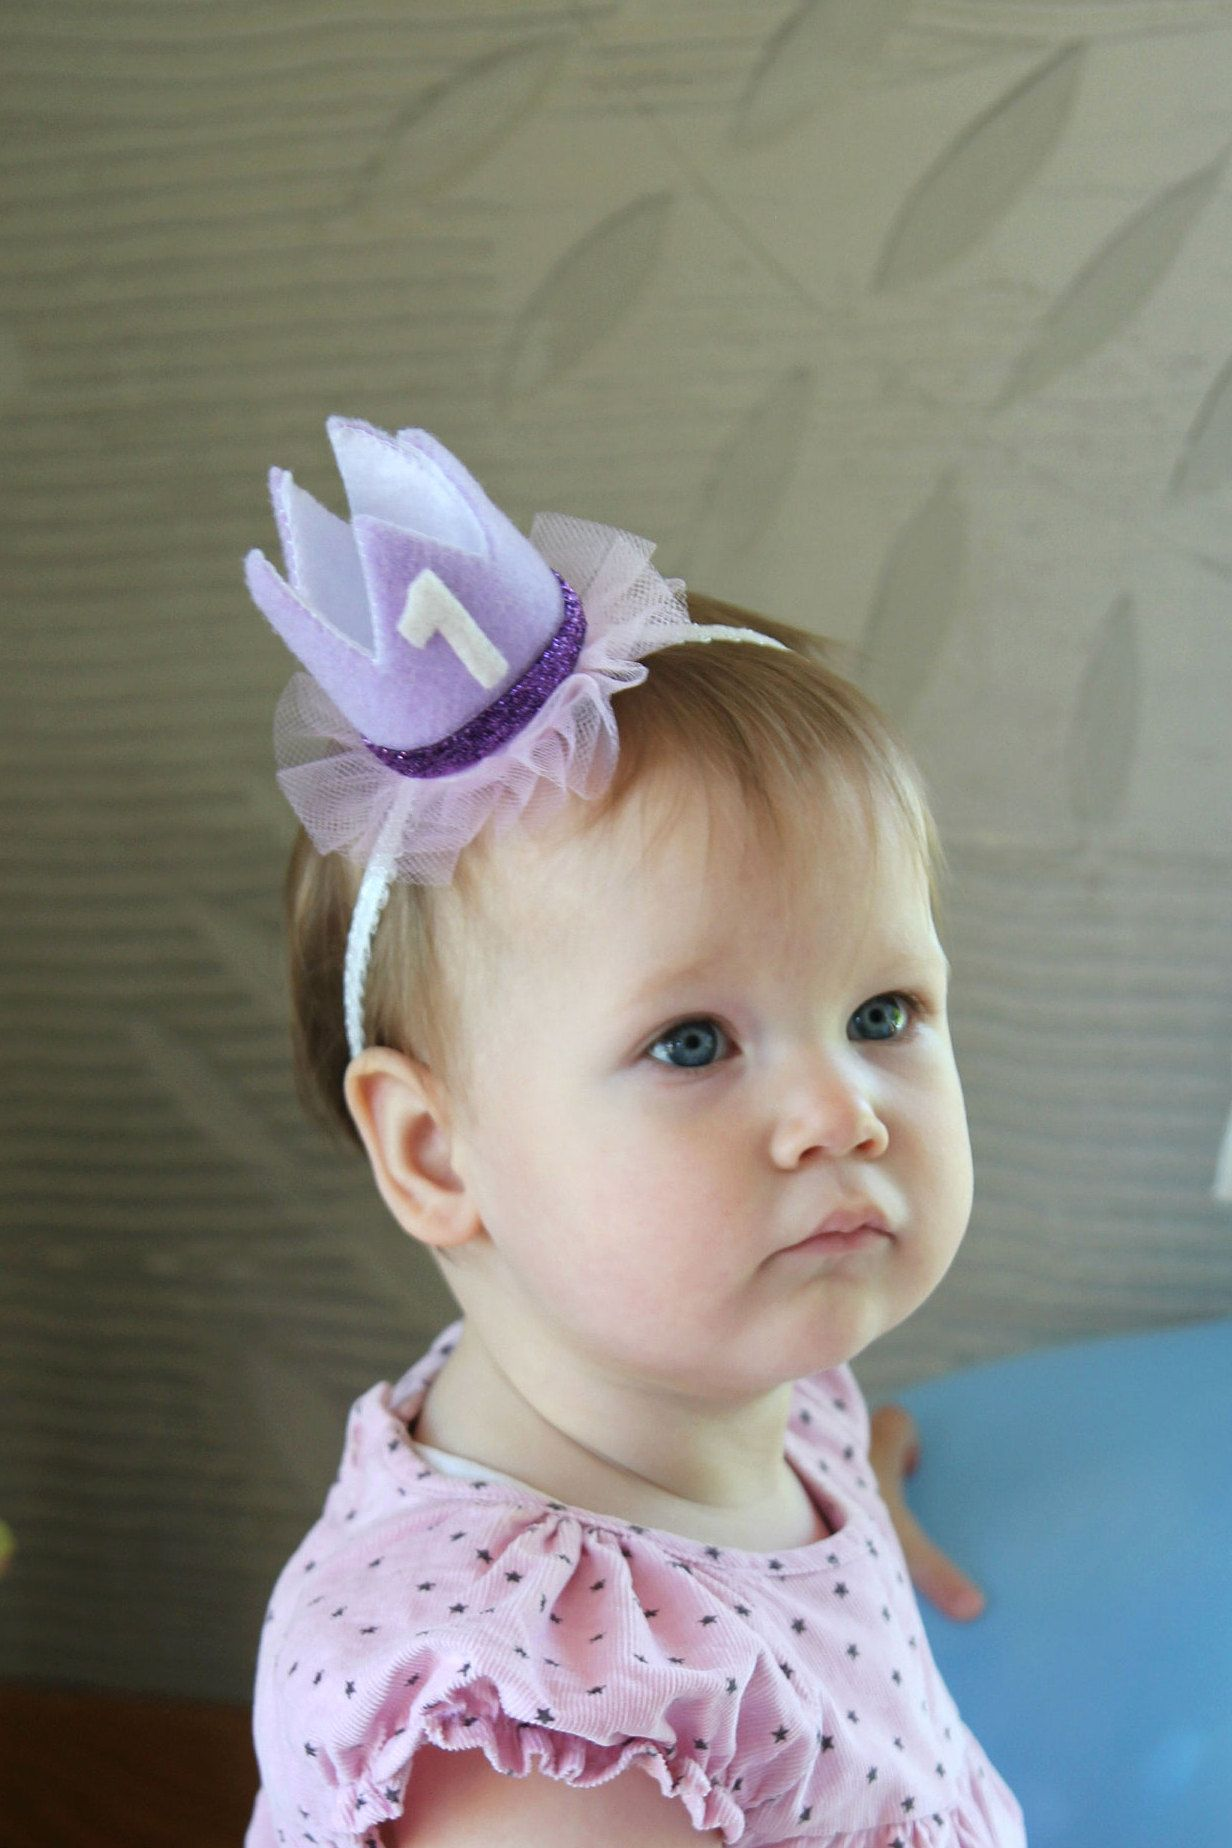 Purple felt crown with number 1 for a baby girl first birthday party -  Adorable 1st birthday headband crown - princess theme birthday outfit 8c6903a6982